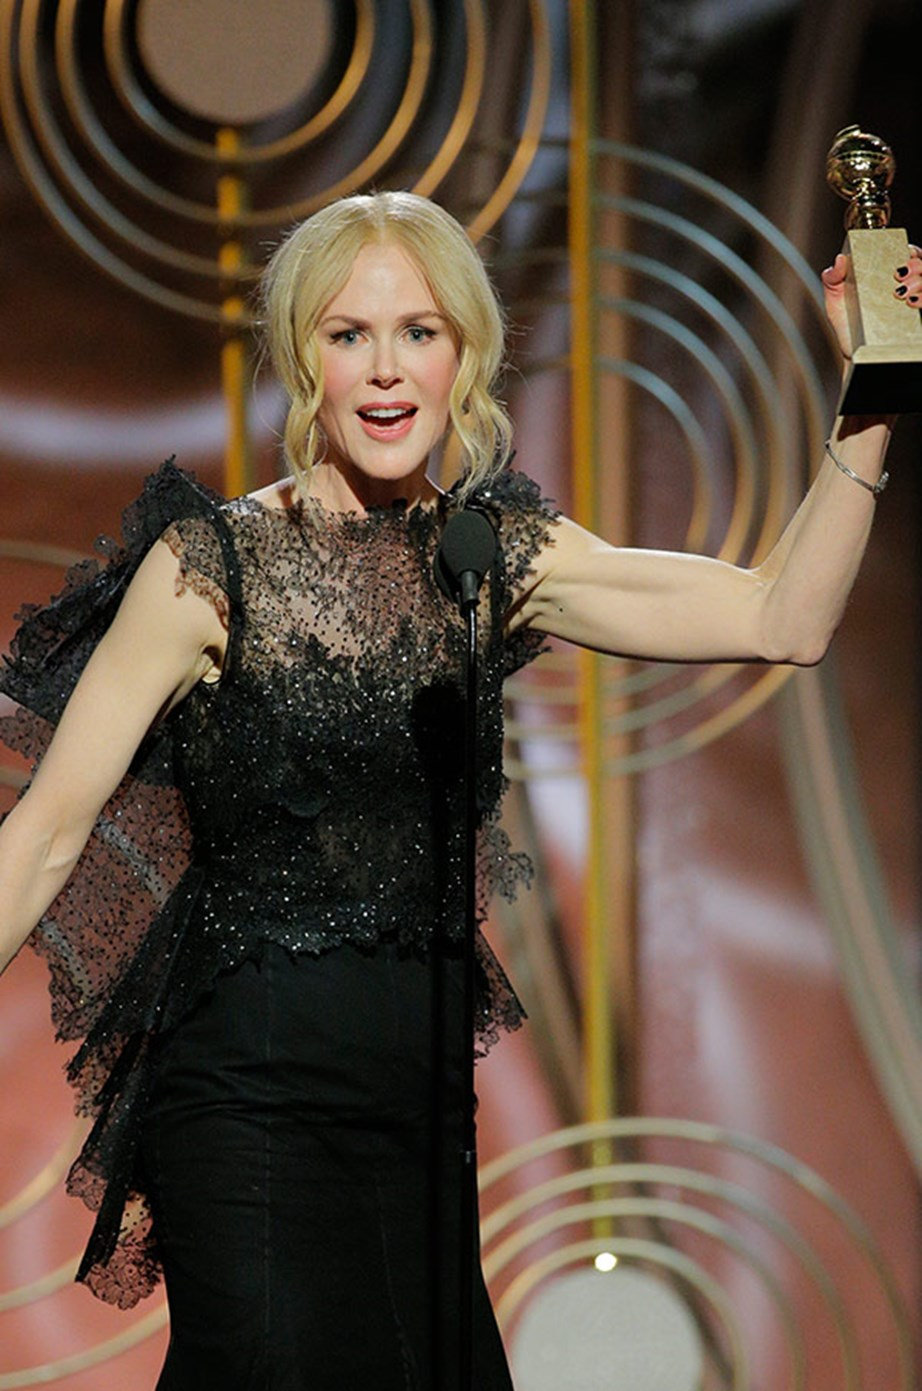 Nicole Kidman took home the Golden Globe for Best Television Performance by an Actress in Big Little Lies.